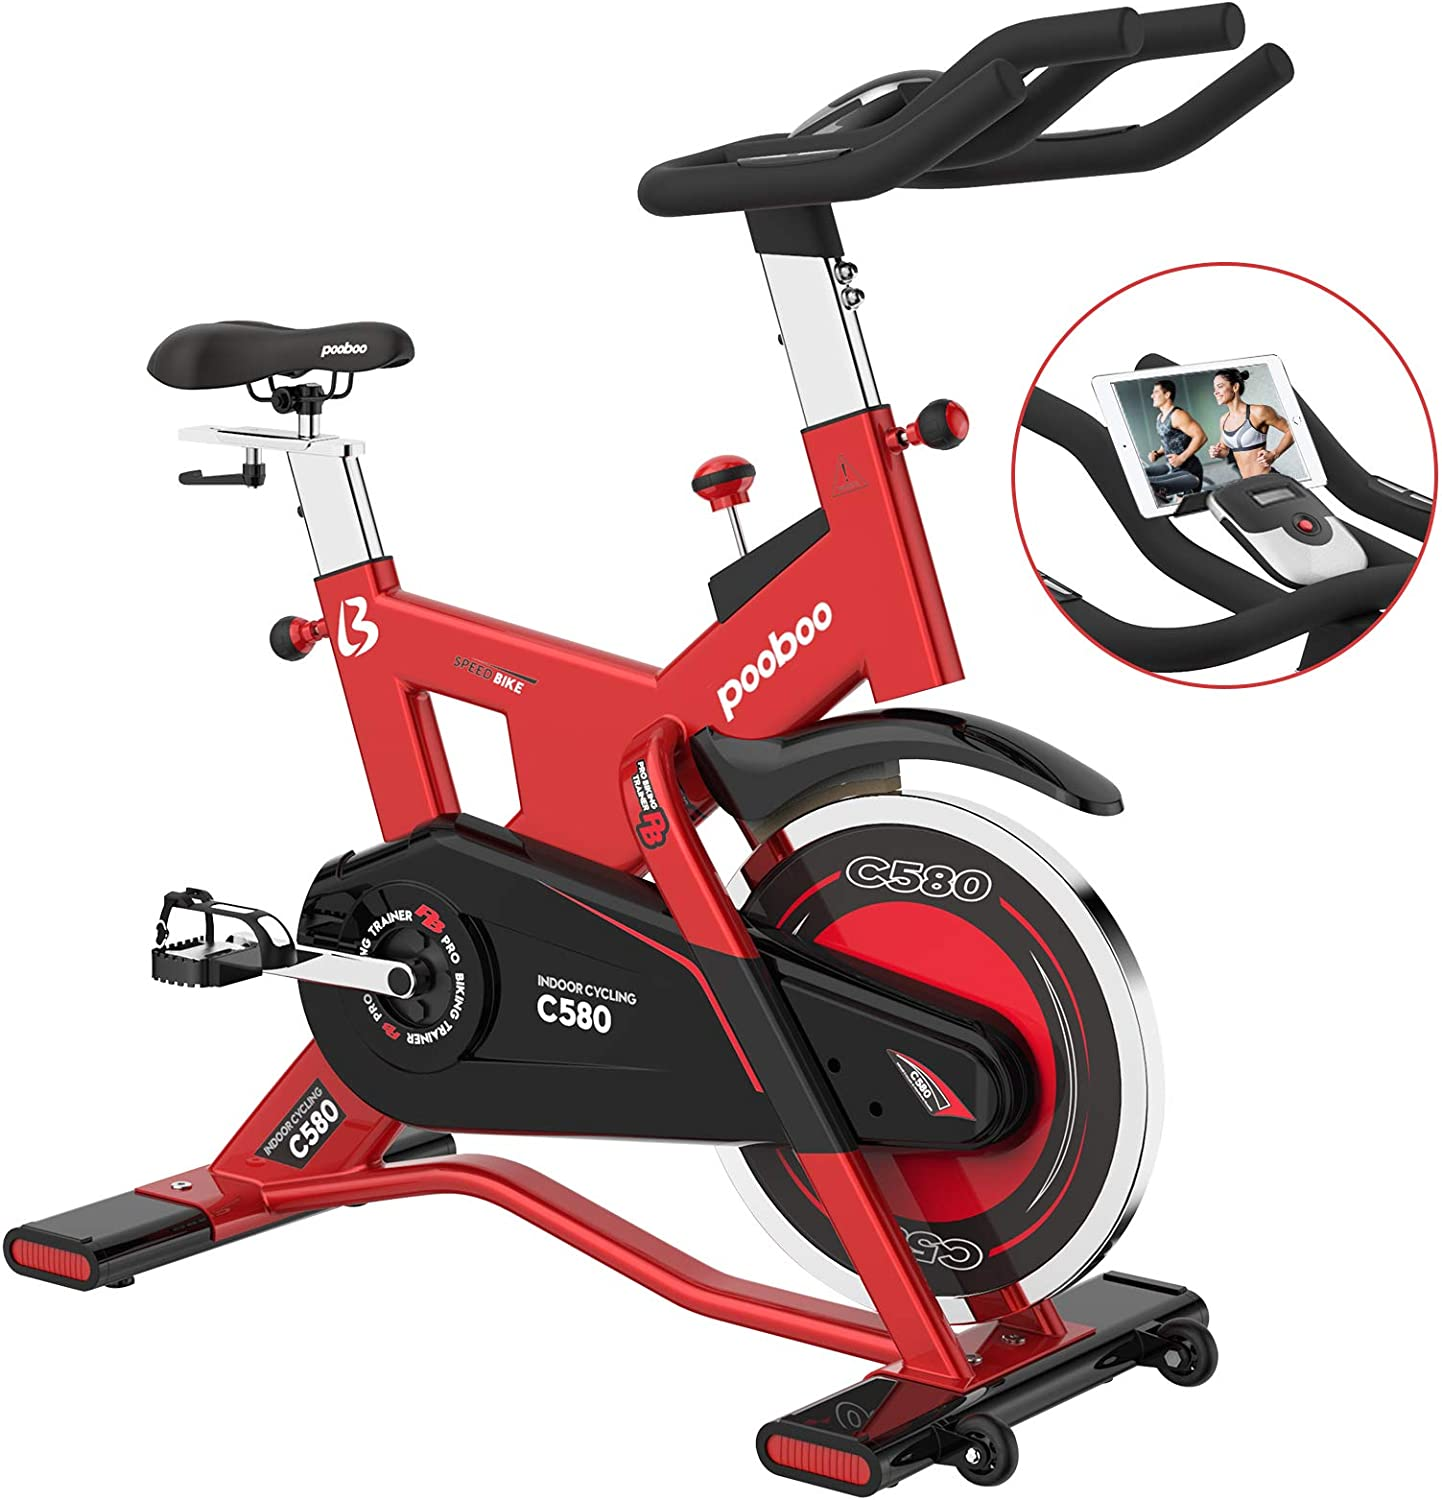 cycool 35% OFF Stationary Exercise Bikes Indoor Cycling 40 Inexpensive lbs Flyw with